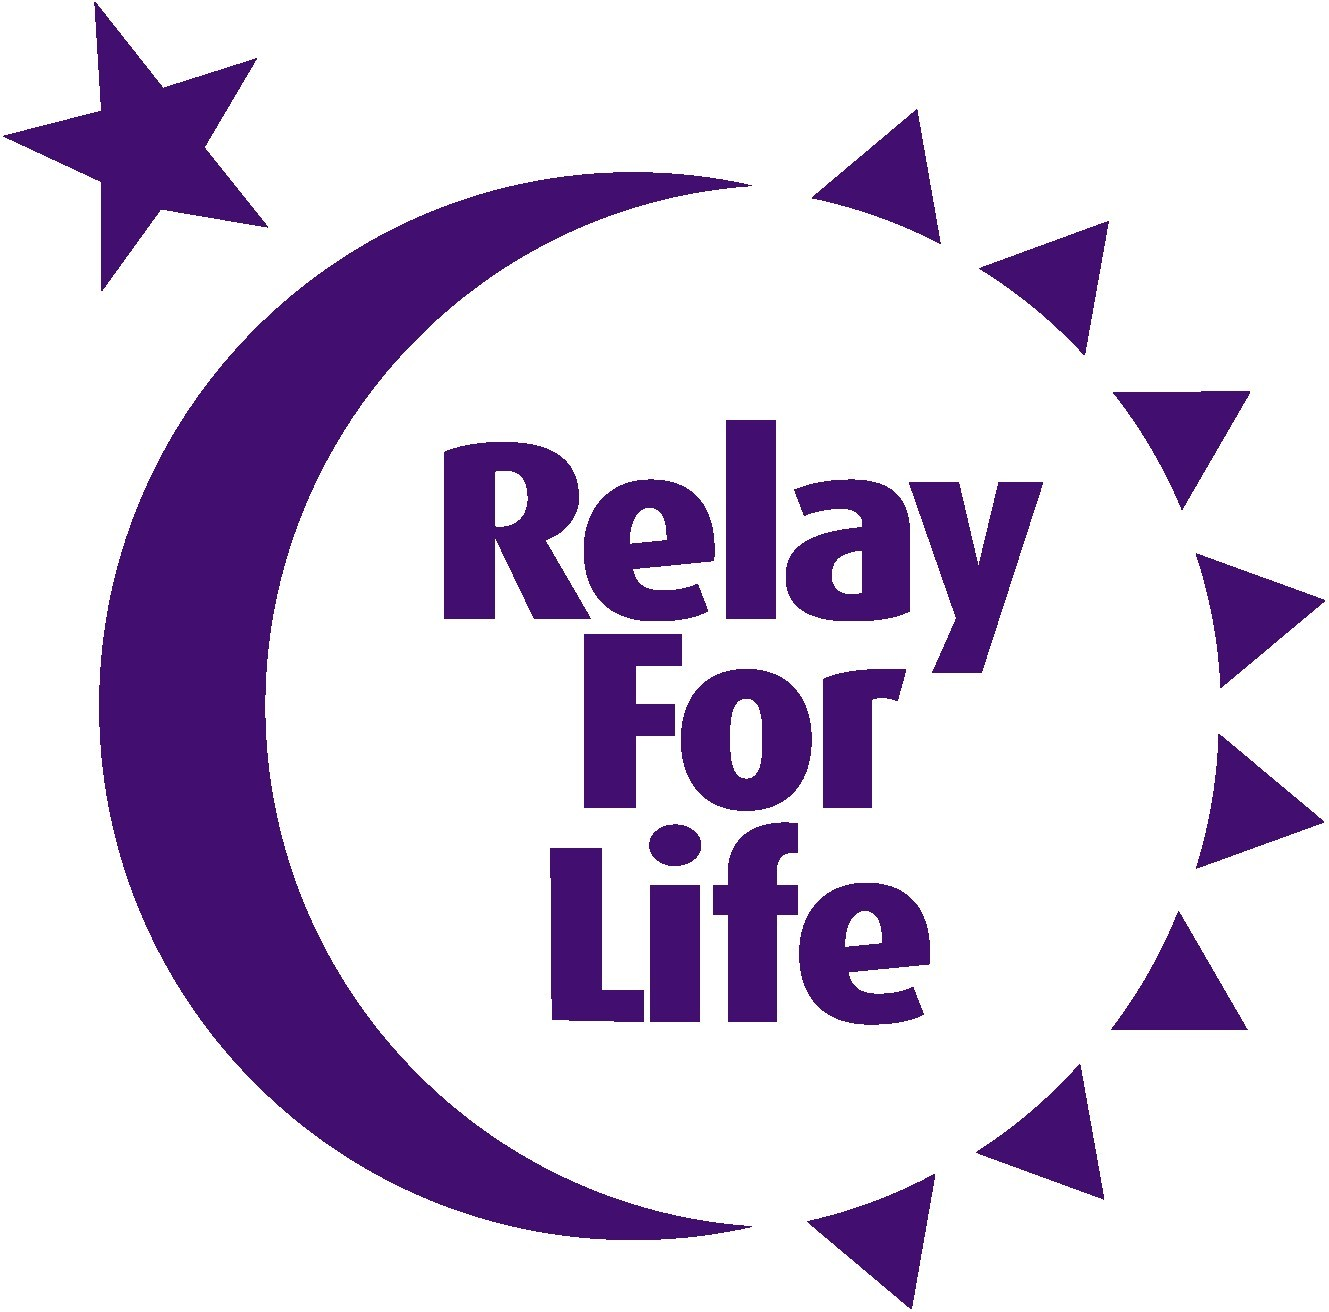 the logo for relay for life